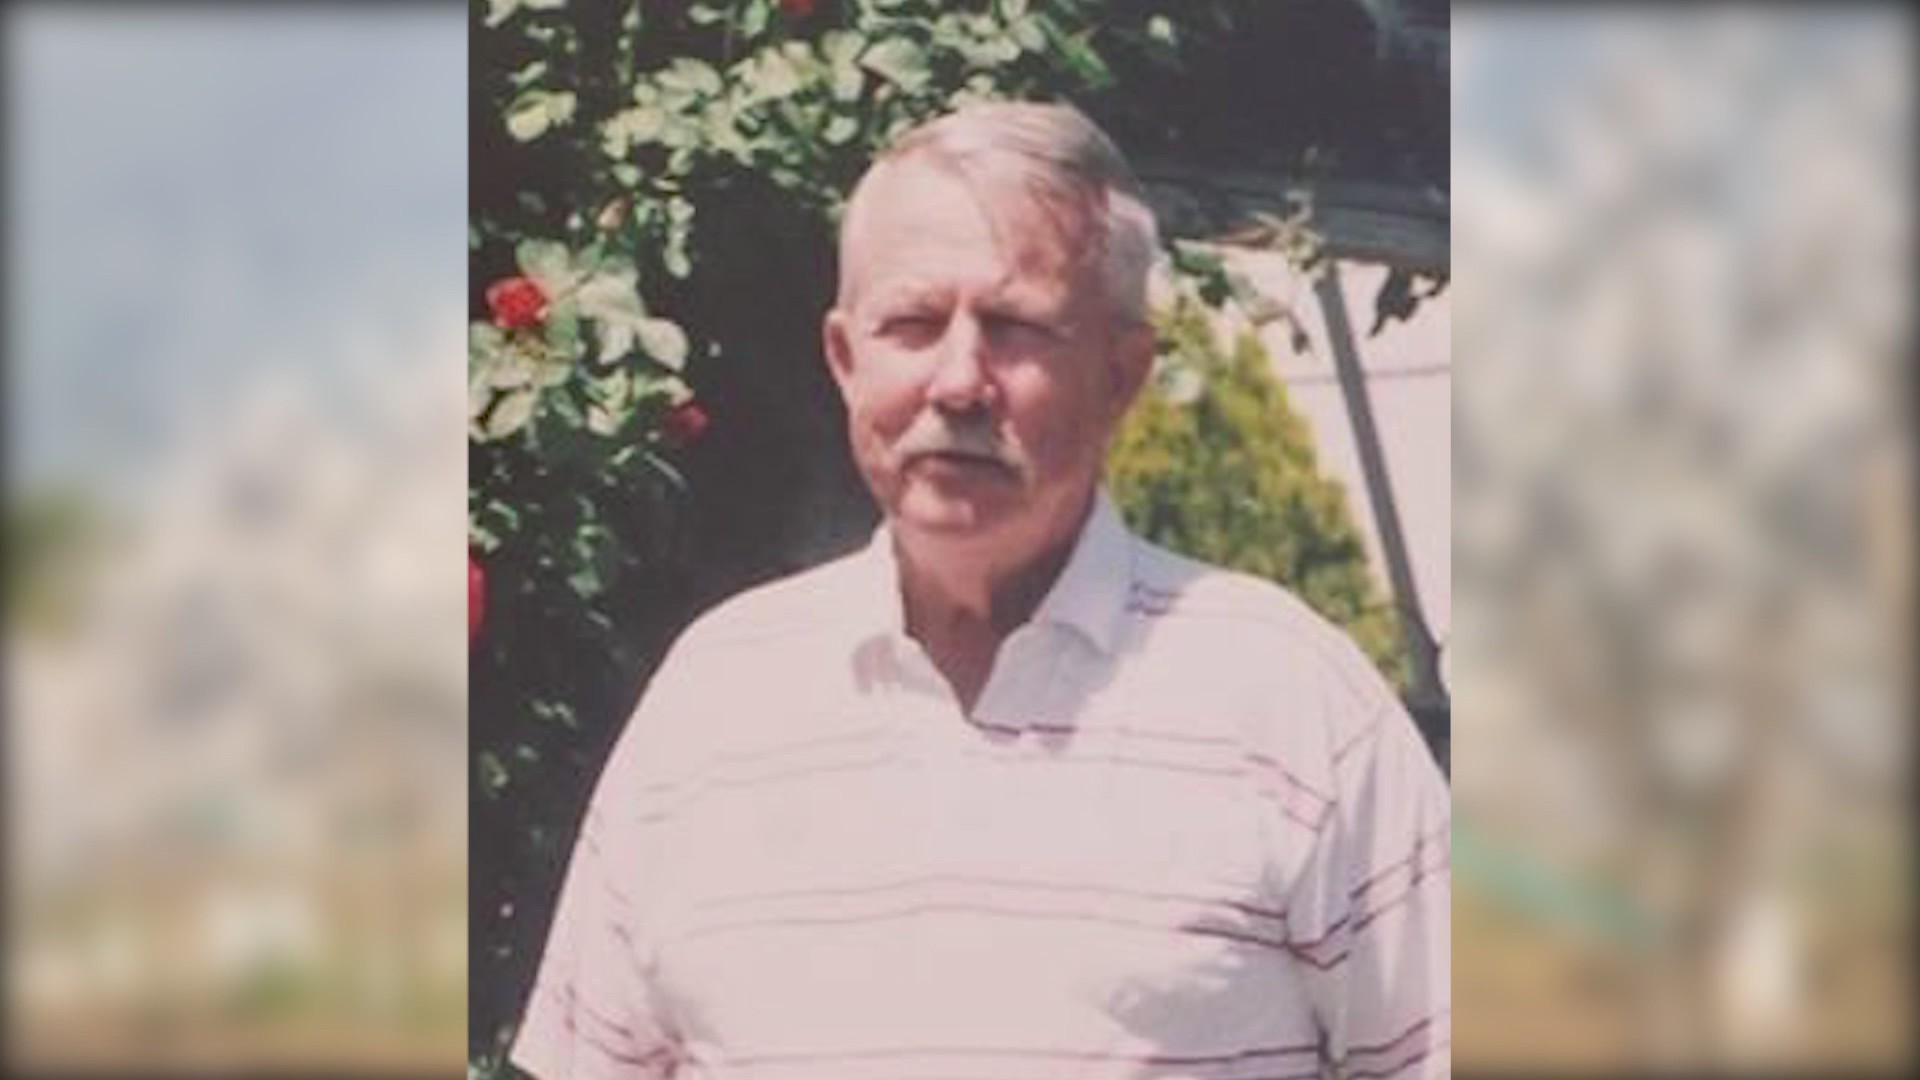 Friends and family mourn the loss of 82-year-old Sanger farmer, crushed by tractor